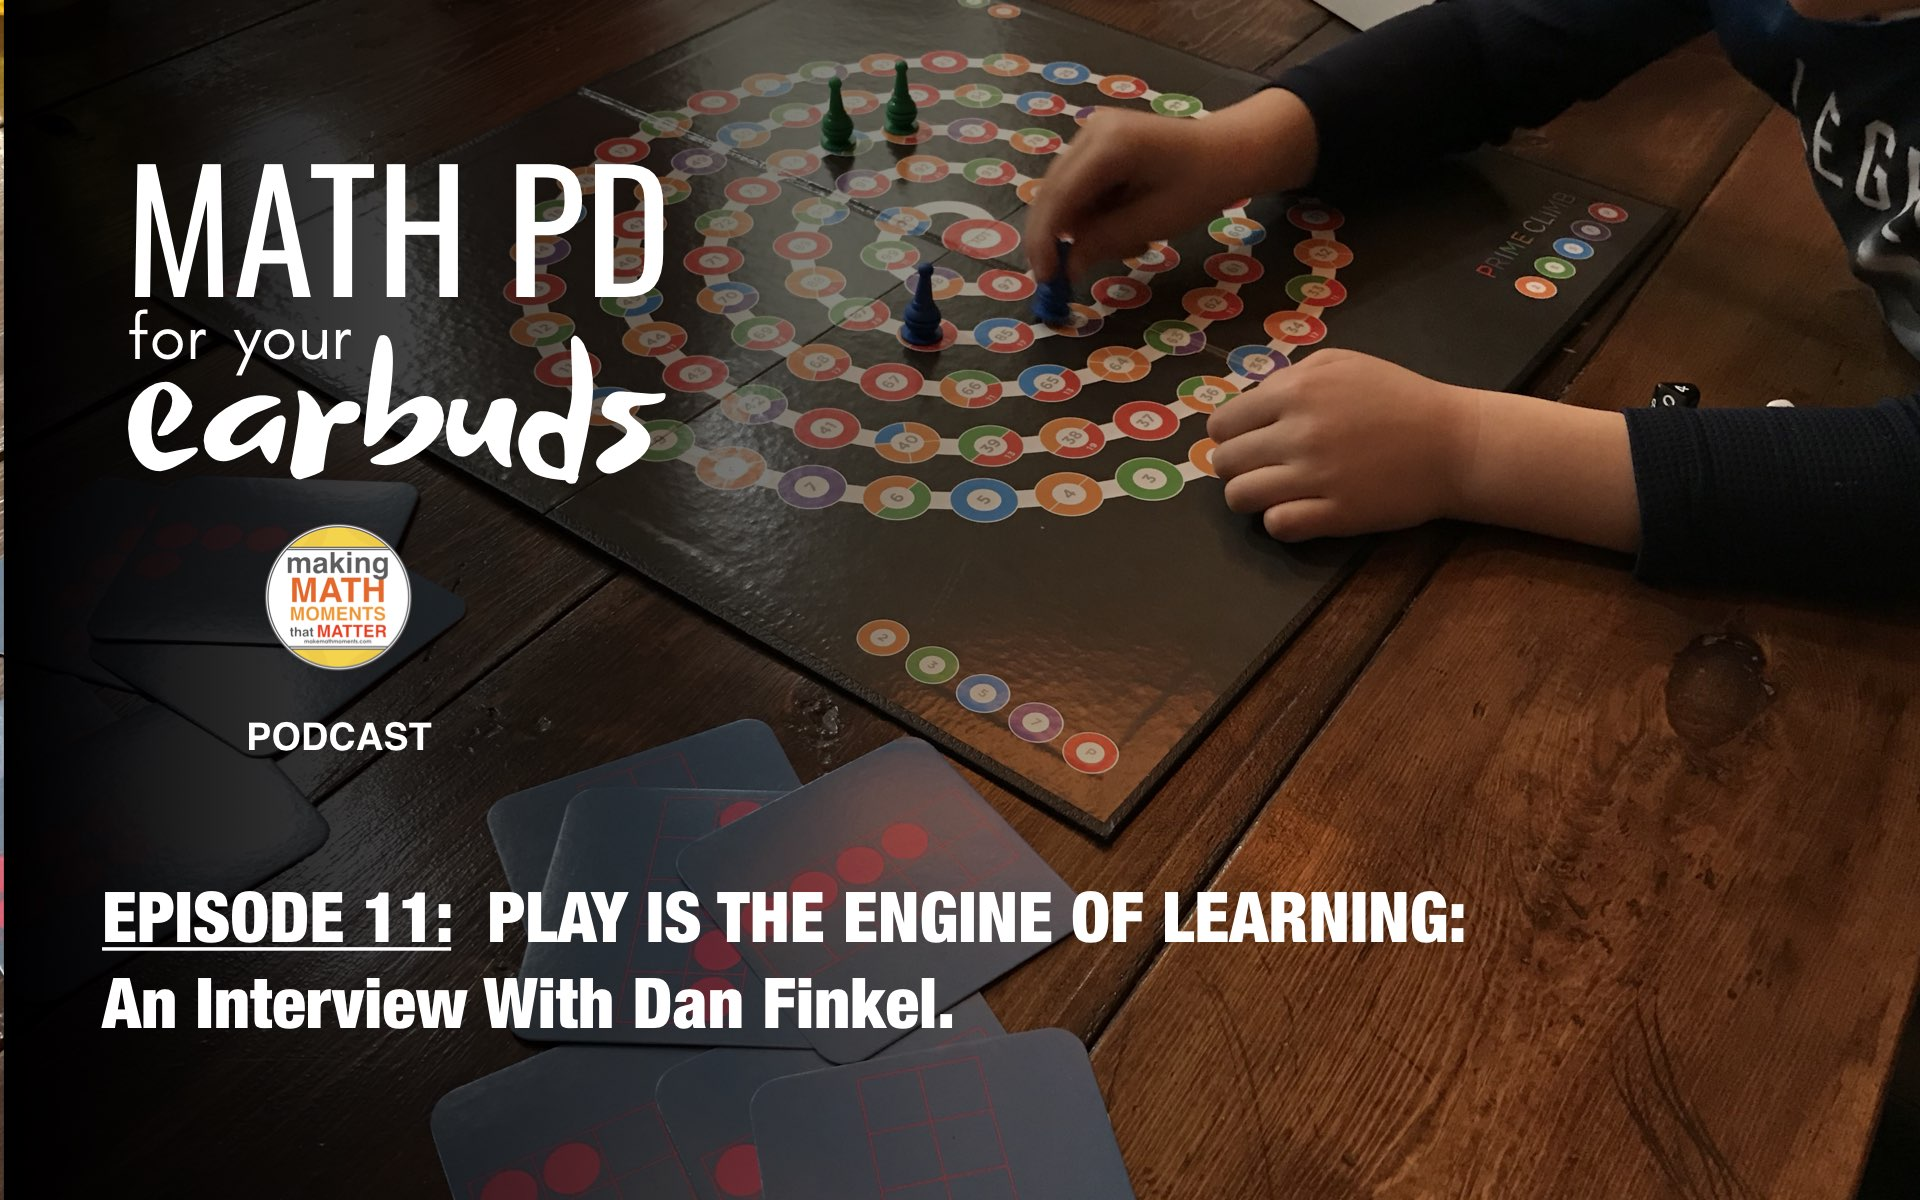 Episode #11: Play is the Engine of Learning: An Interview With Dan Finkel